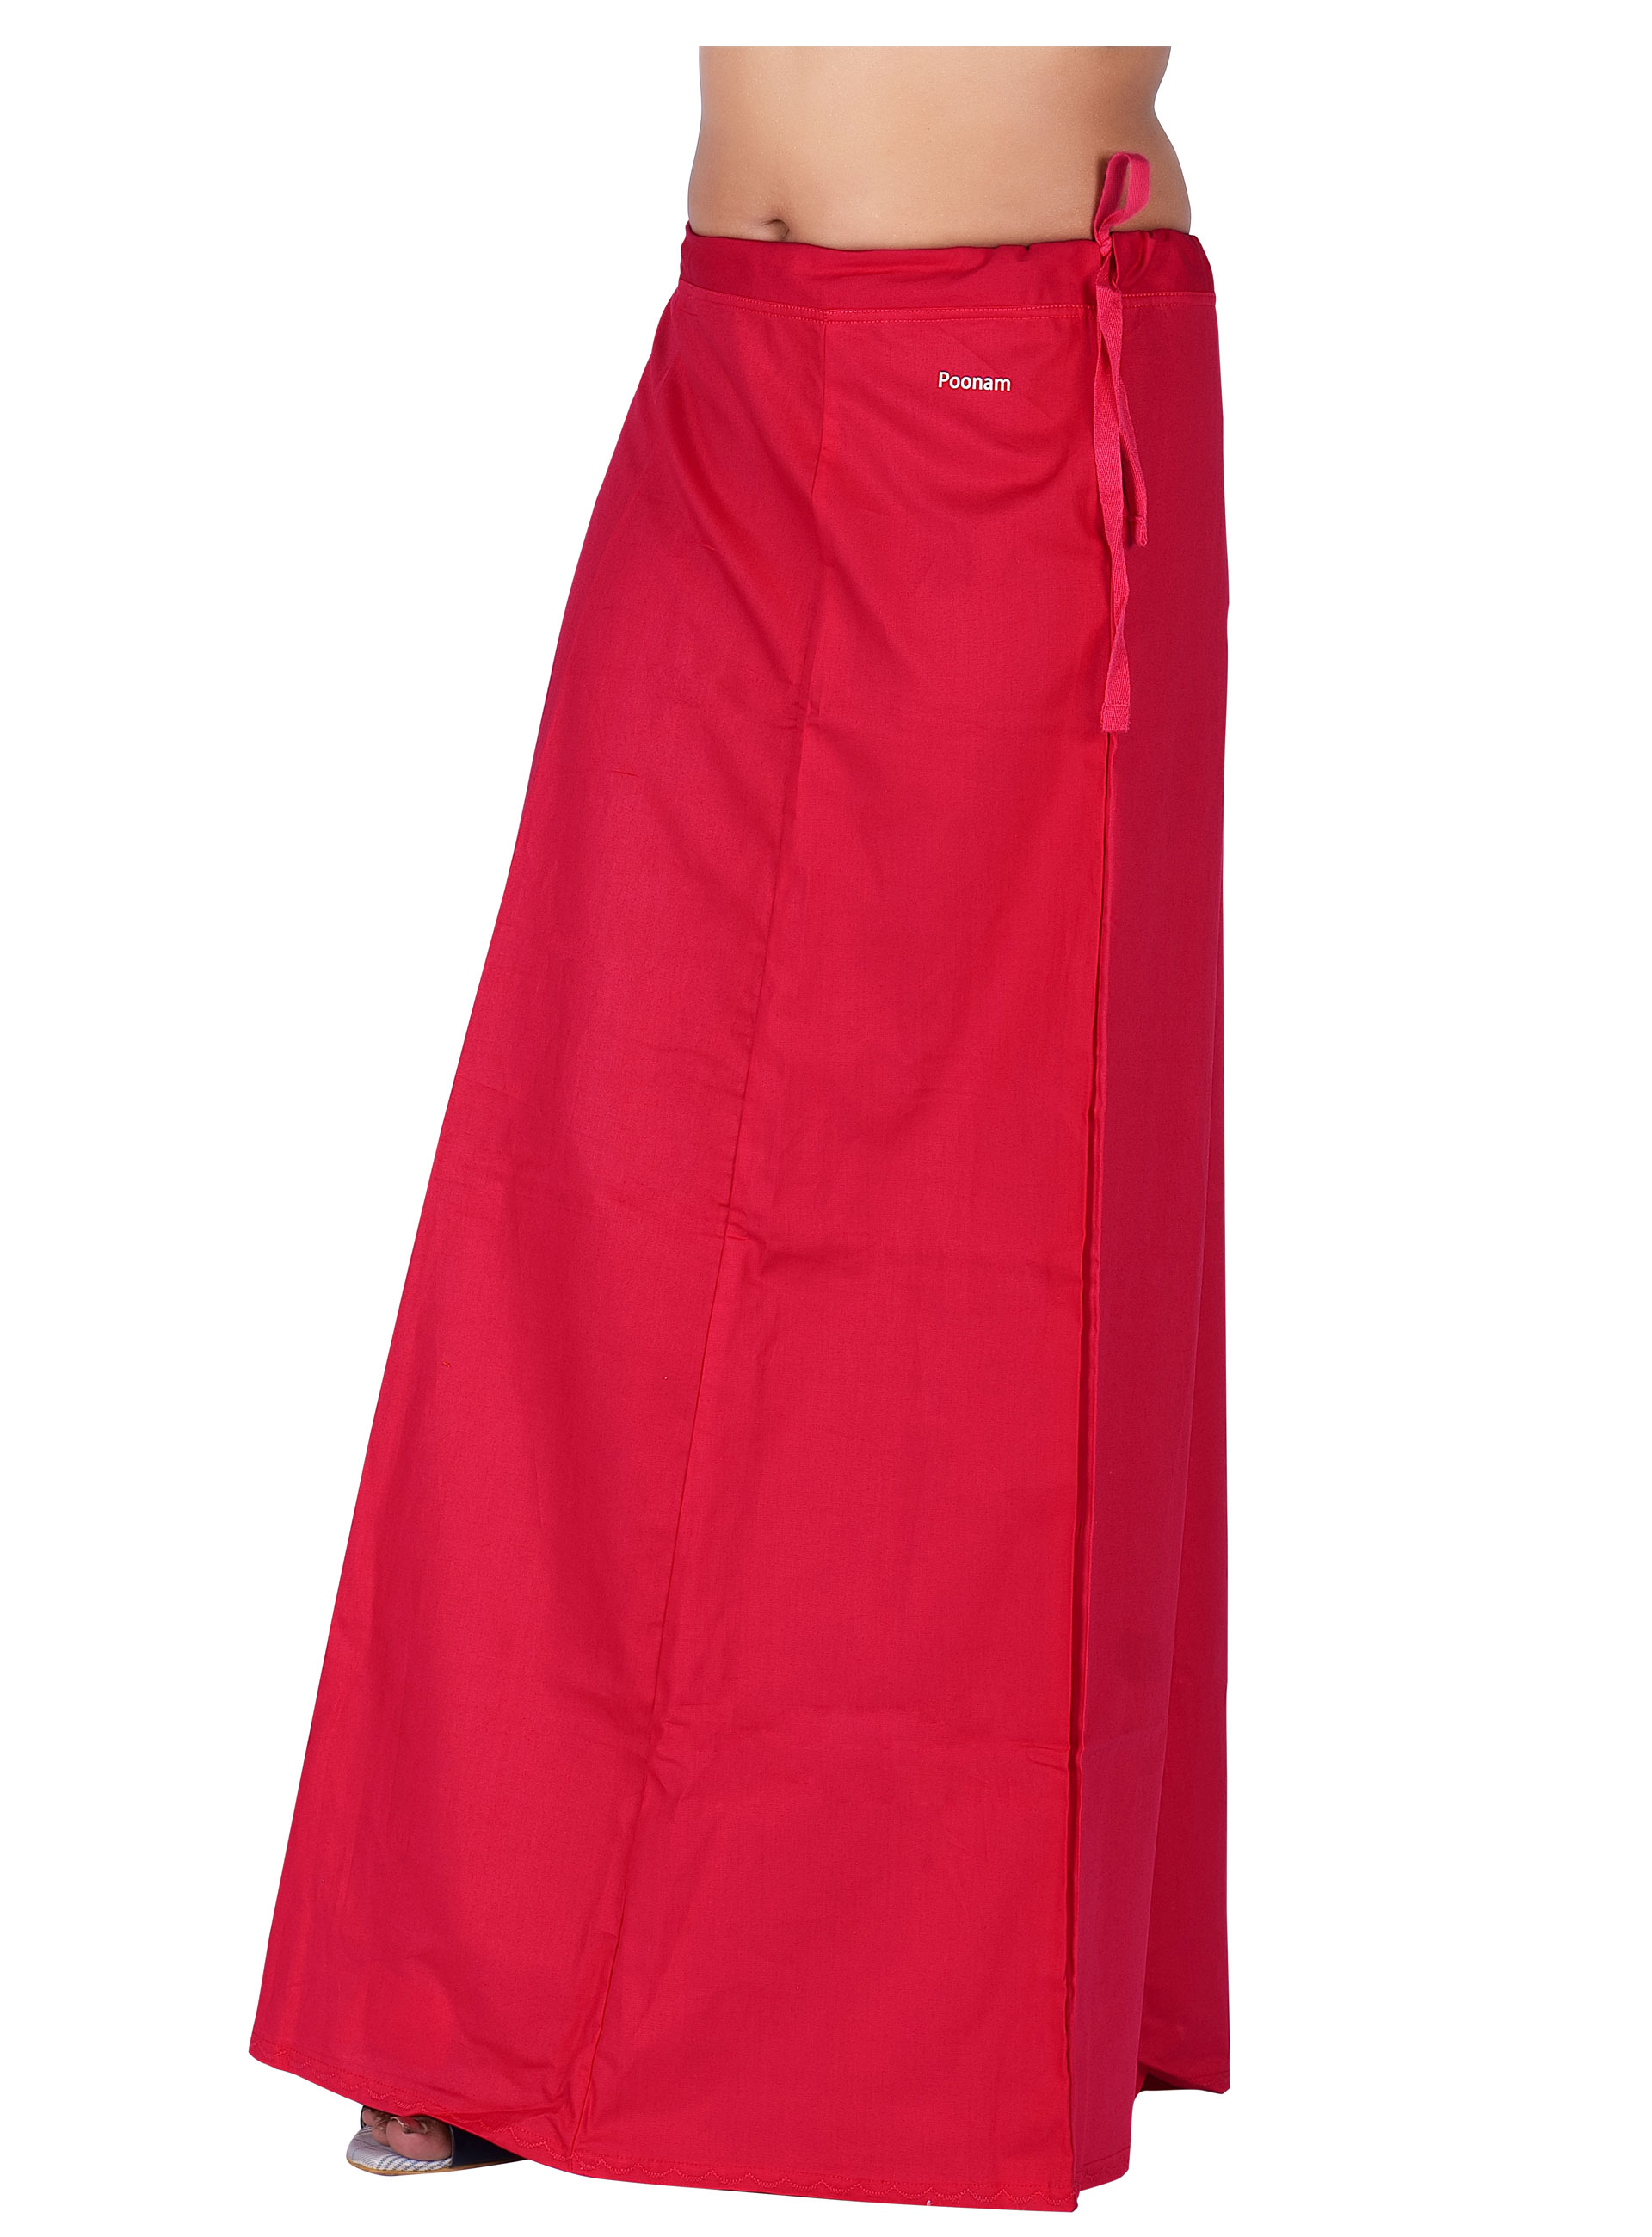 Red Color Aswati Premium Inskirts (6 PART)